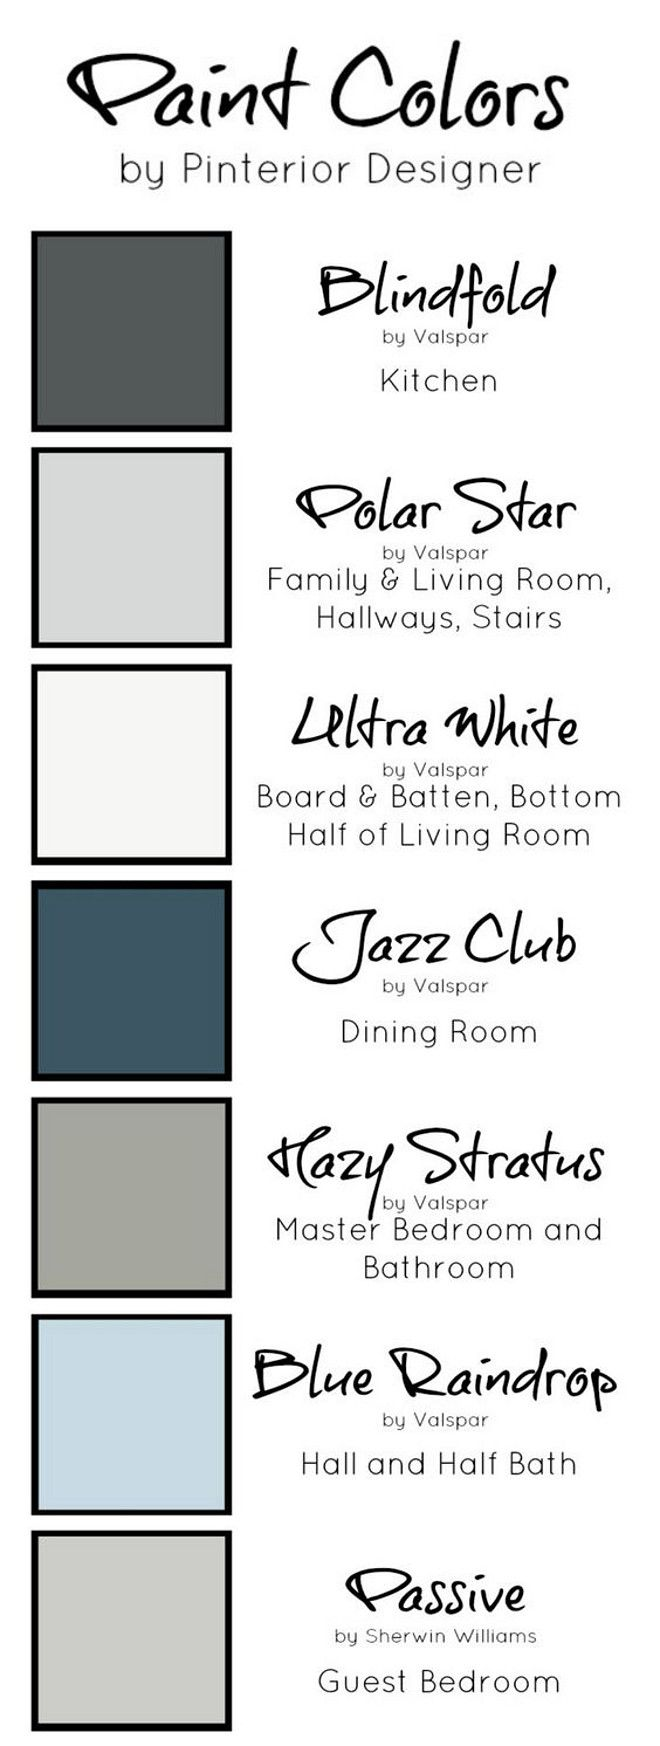 Living room blue paint color ideas - Every Room Of The House Paint Color Ideas Whole House Paint Color Valspar Blindfold Blue Color Schemesliving